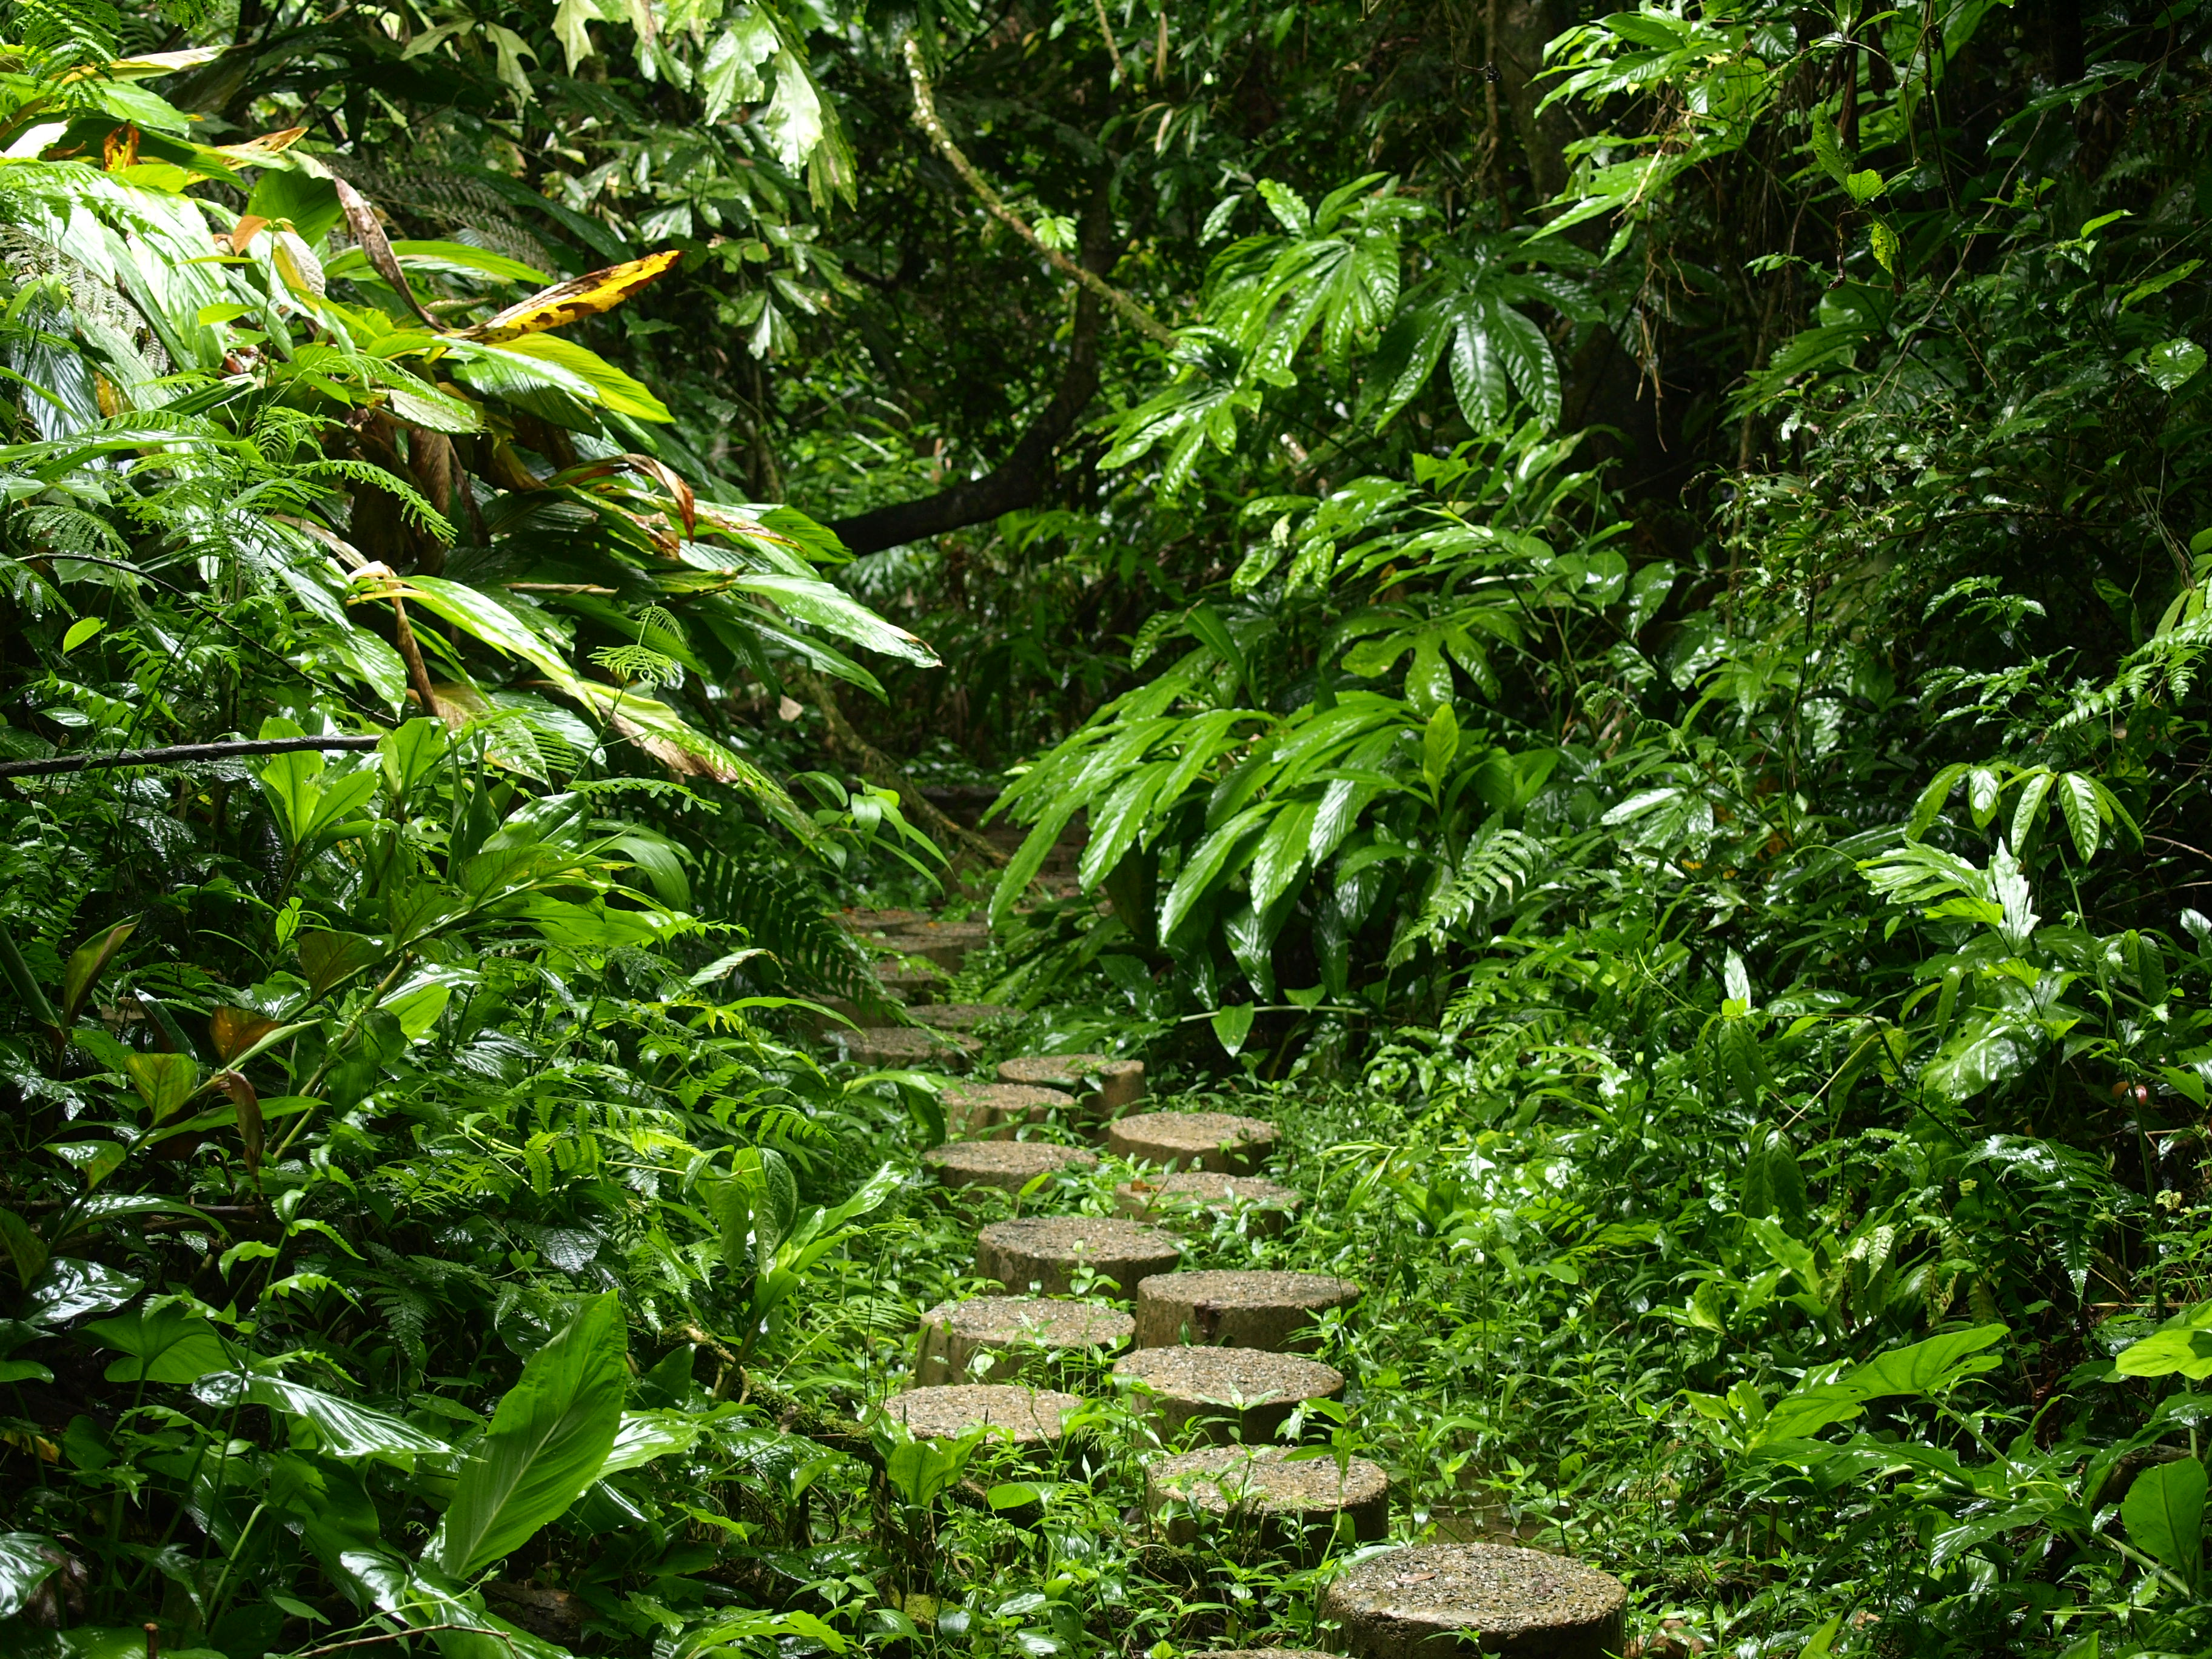 Rain forest parcel at Xishuangbanna Tropical Botanical Gardens